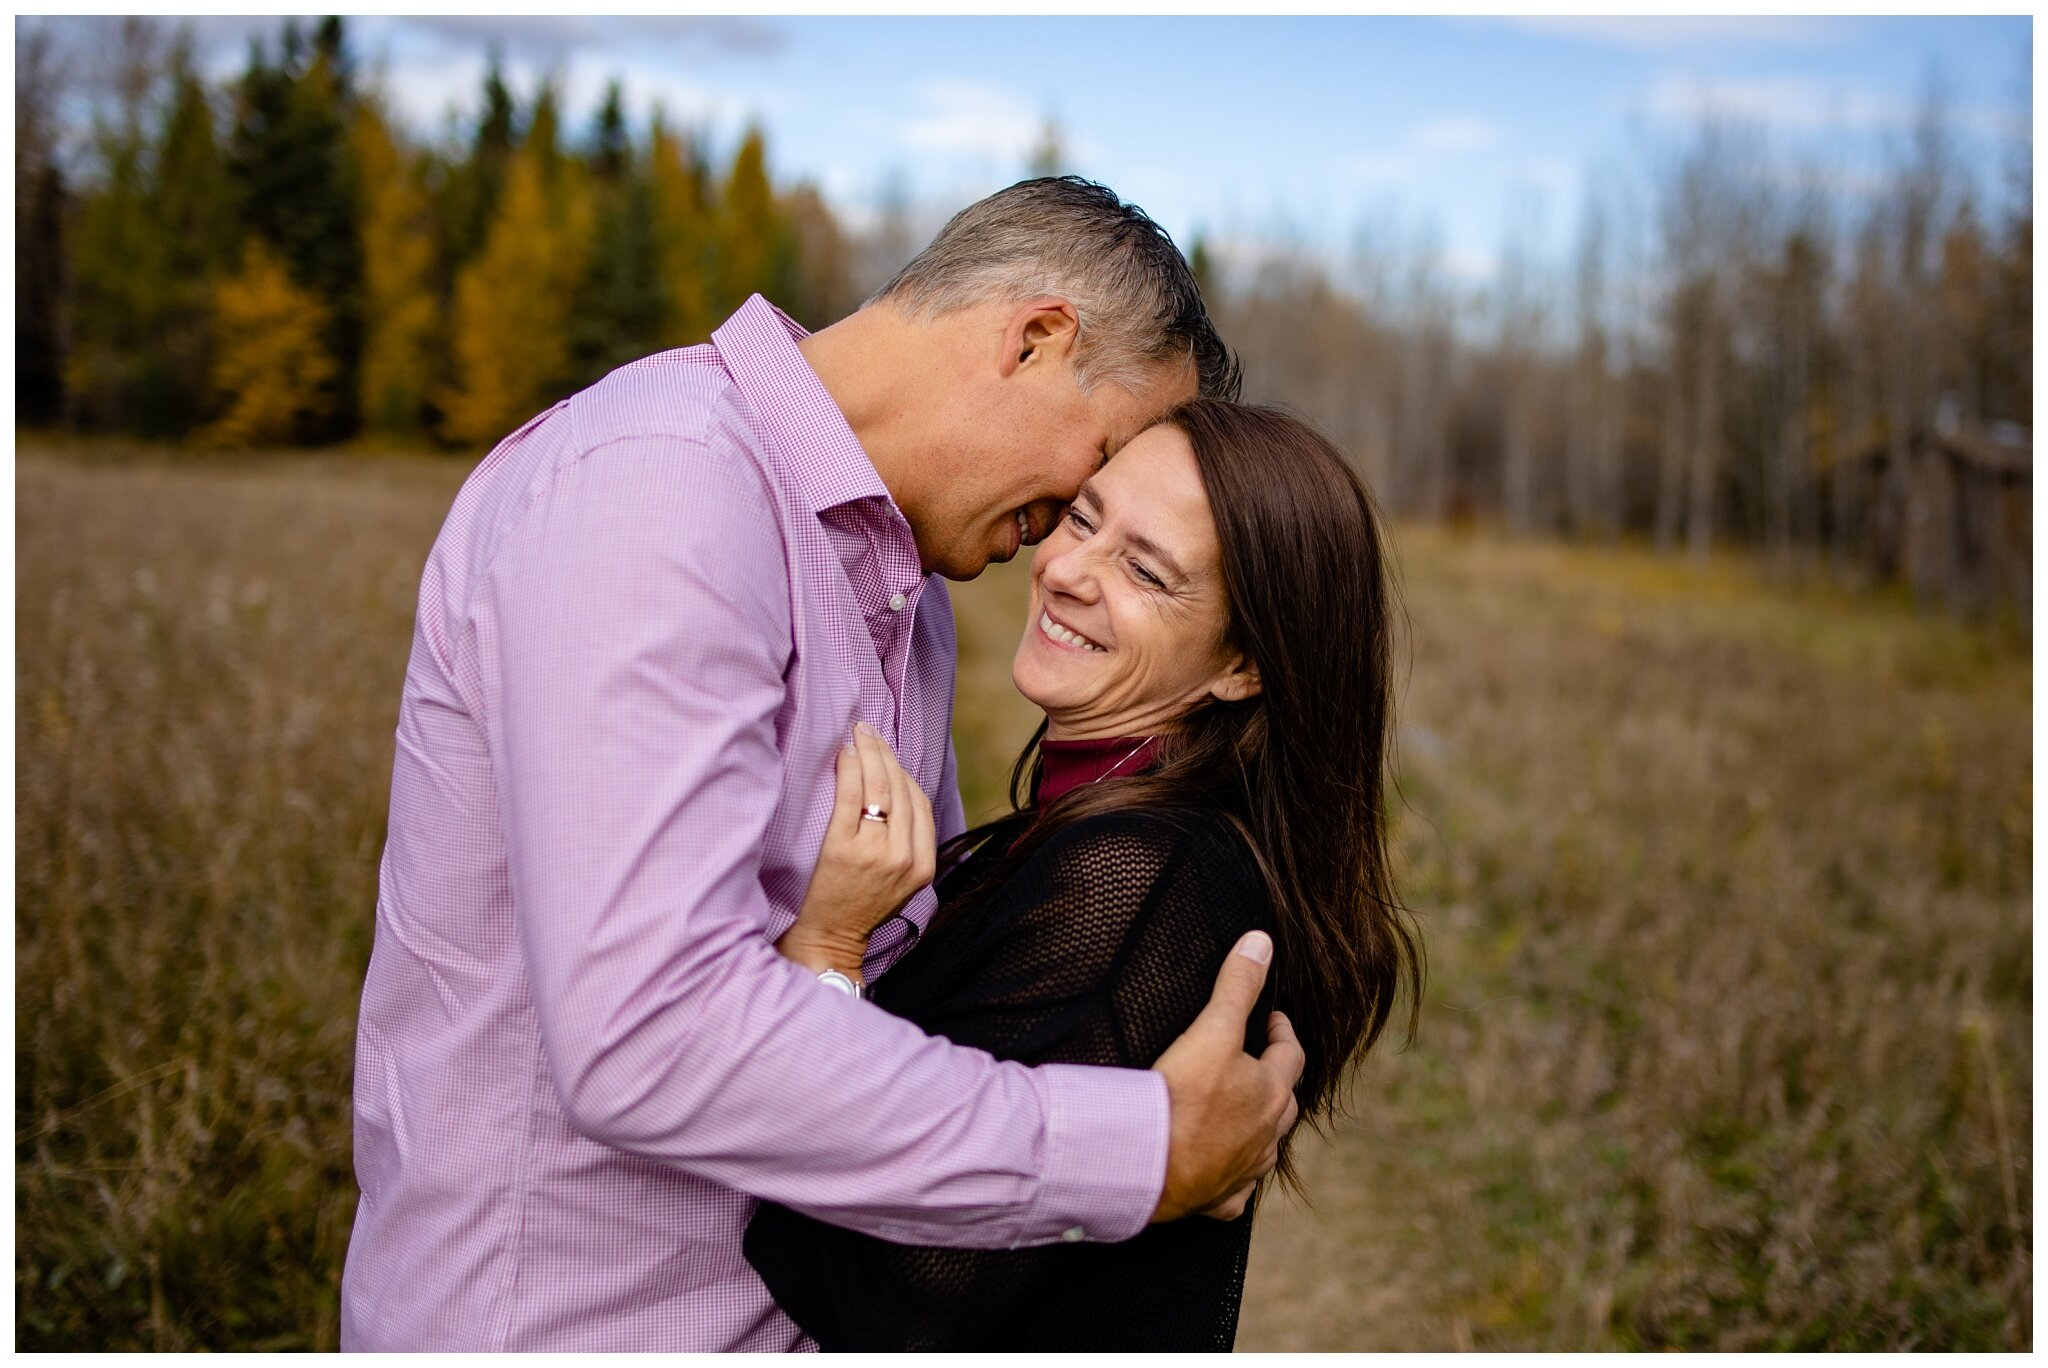 Wagner Natural Area Acheson couples Photographer Alberta  engagement older couple romantic fall photos_0003.jpg